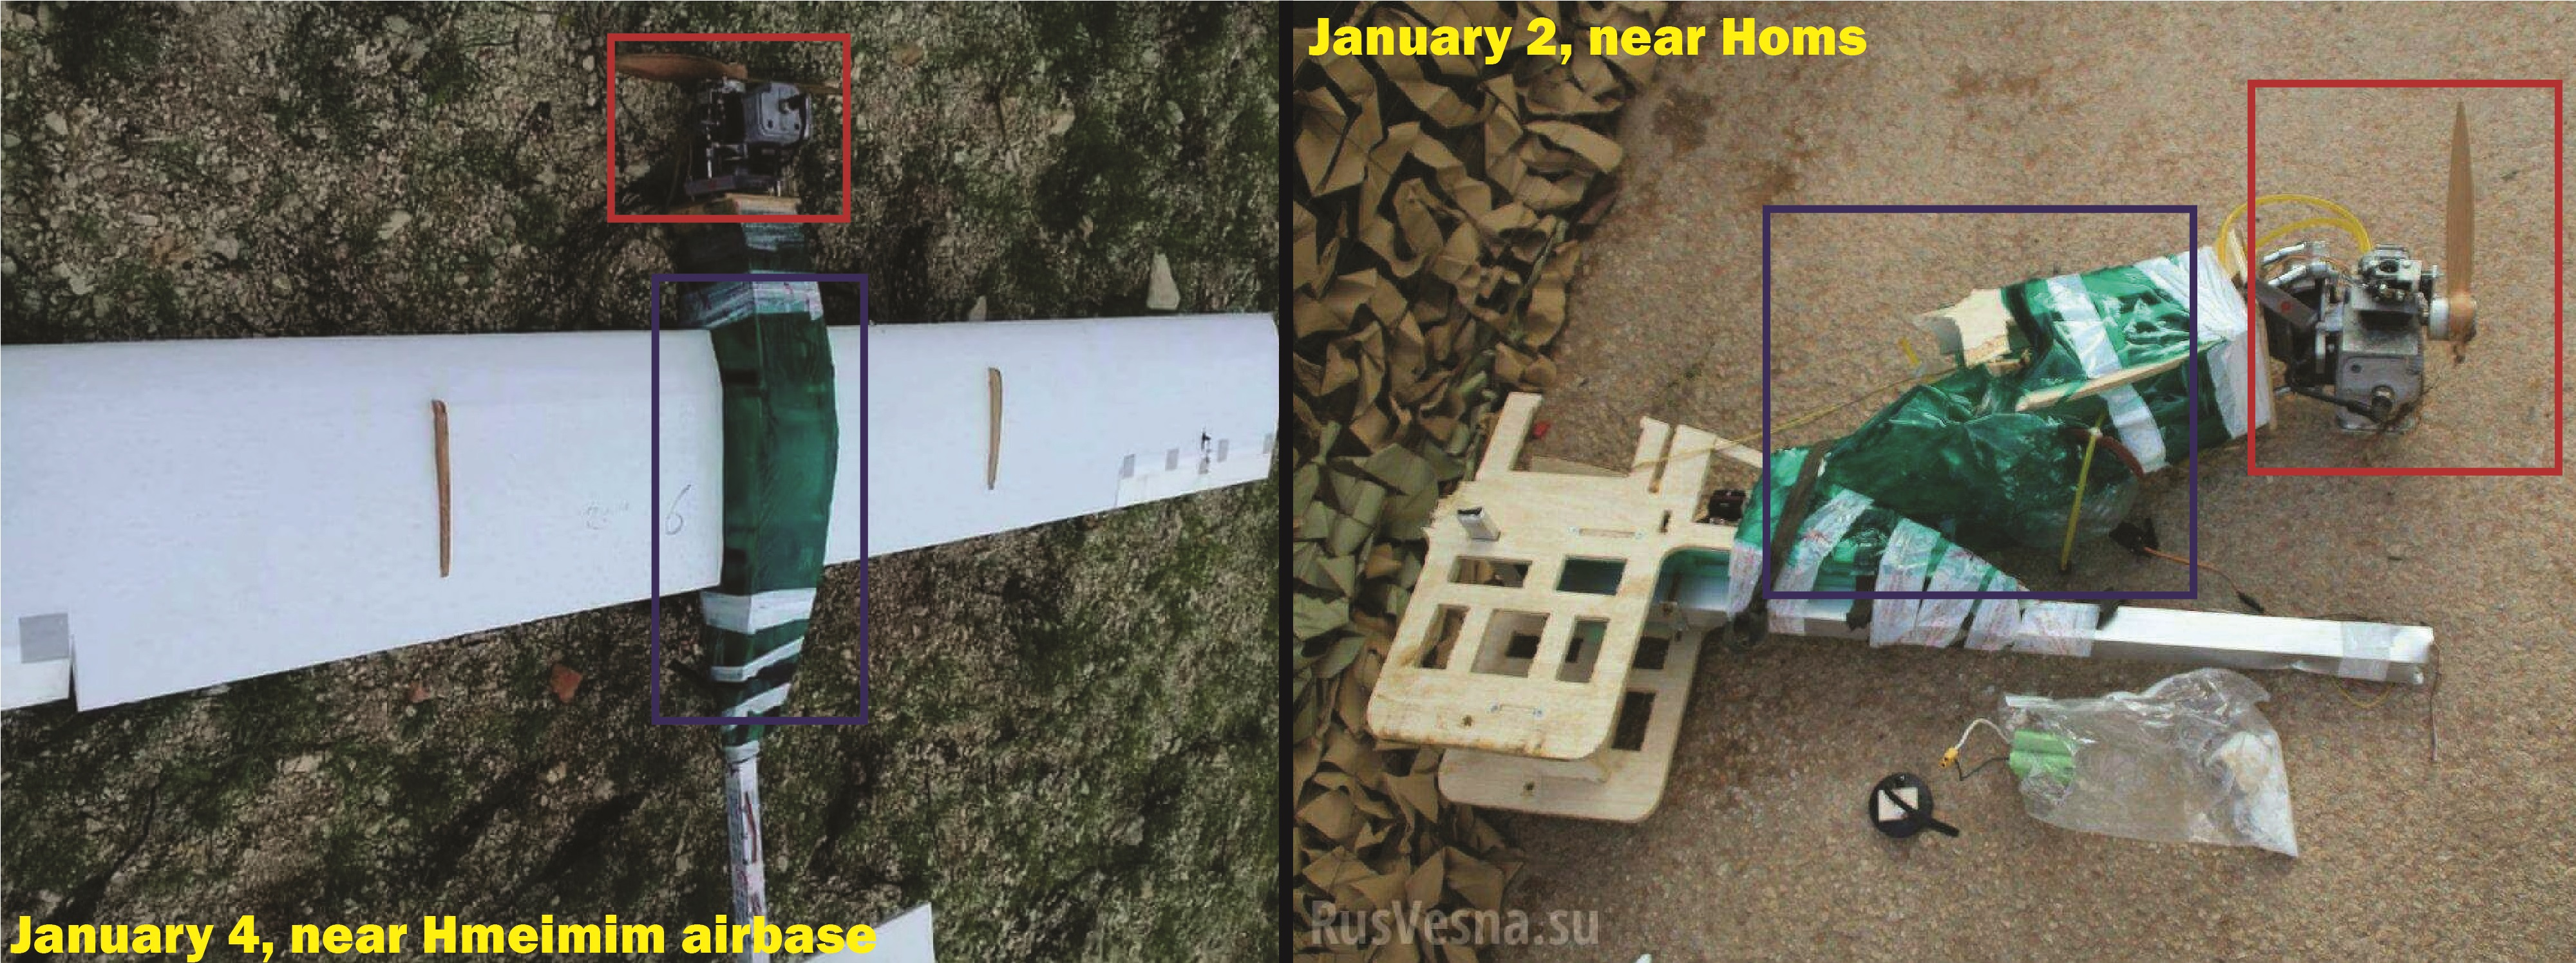 Russian Military, National Defense Forces Shoot Down Several Armed UAVs Near Hmeimim Airbase And Homs (Photos, Video)